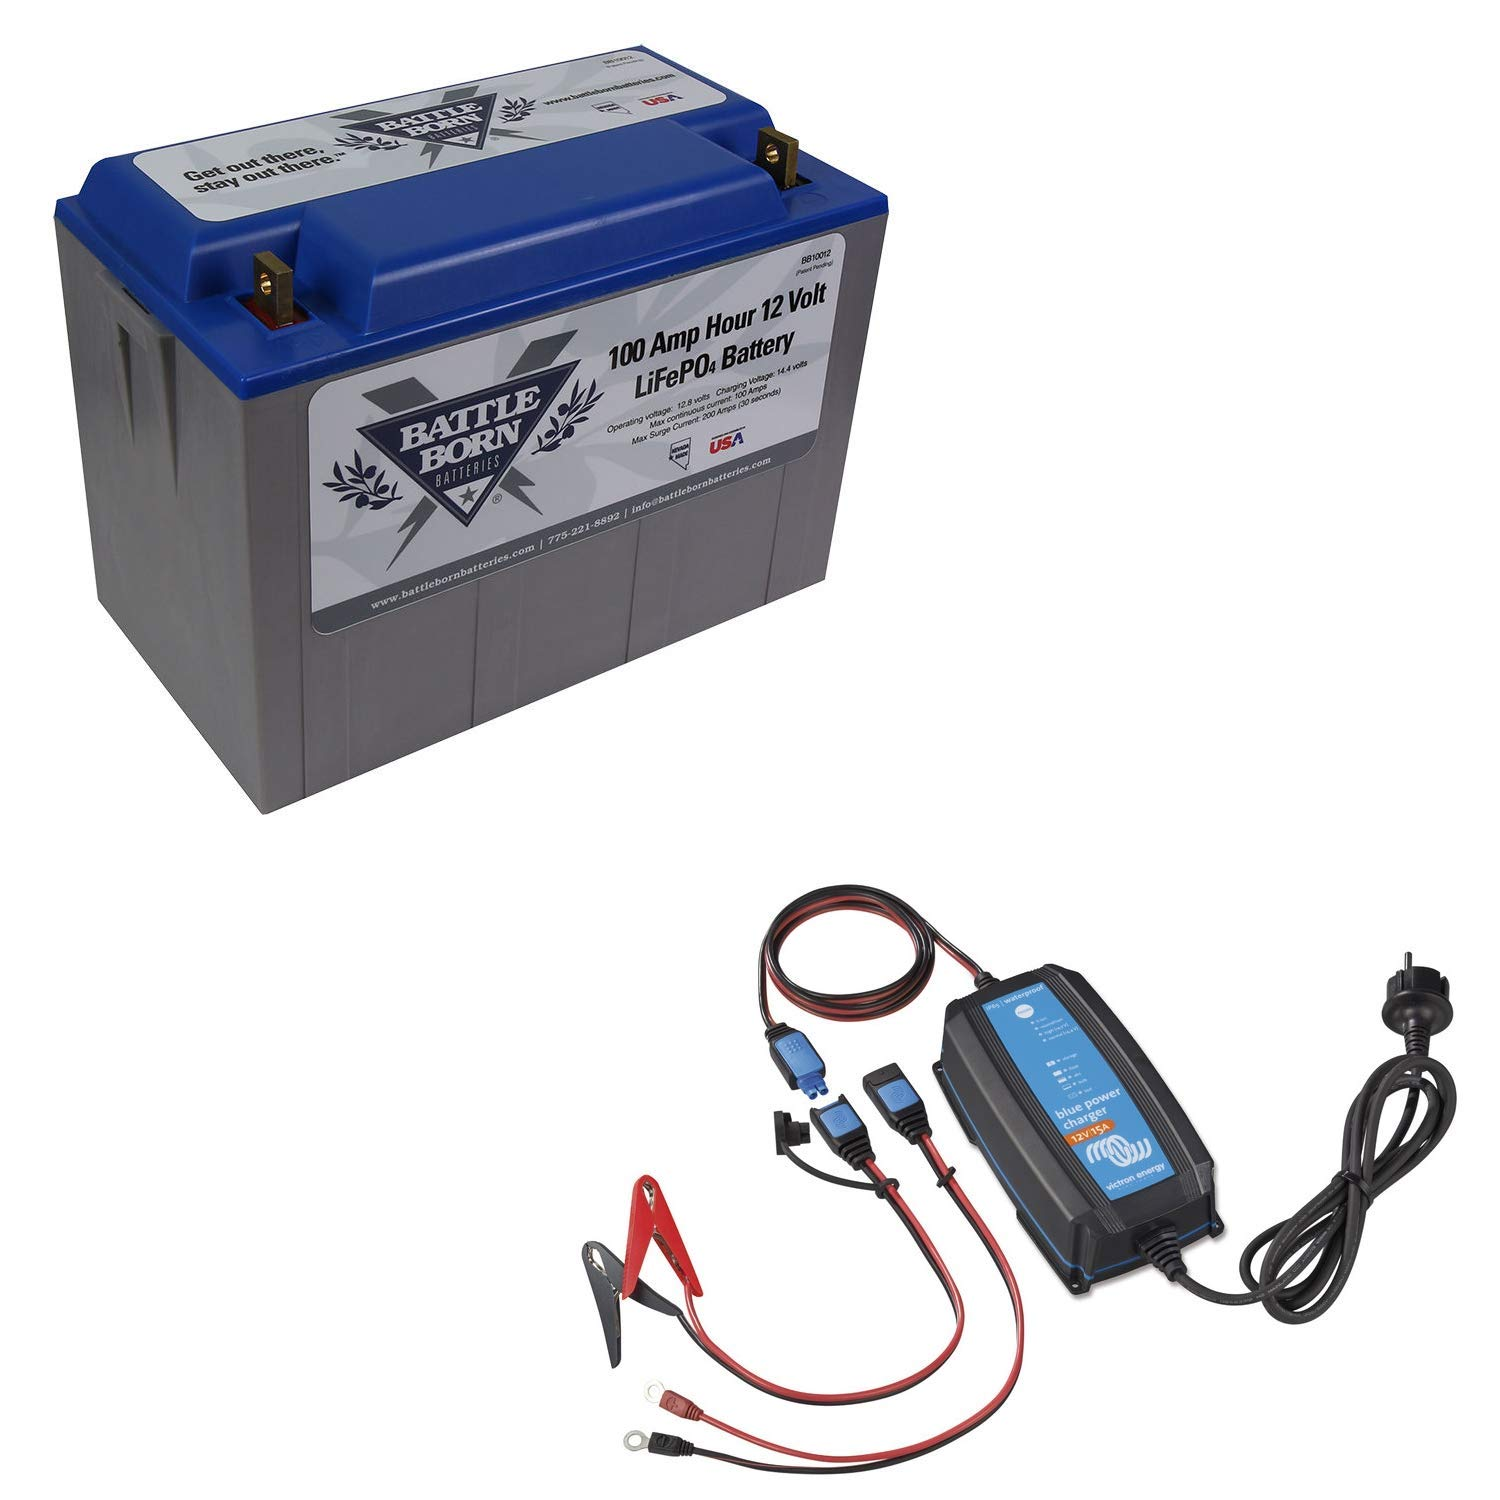 Battle Born Batteries BB10012 100Ah 12V LiFePO4 Lithium Deep Cycle Battery Bundle with Victron IP65 15A Bluetooth Charger by Battle Born Batteries (Image #1)